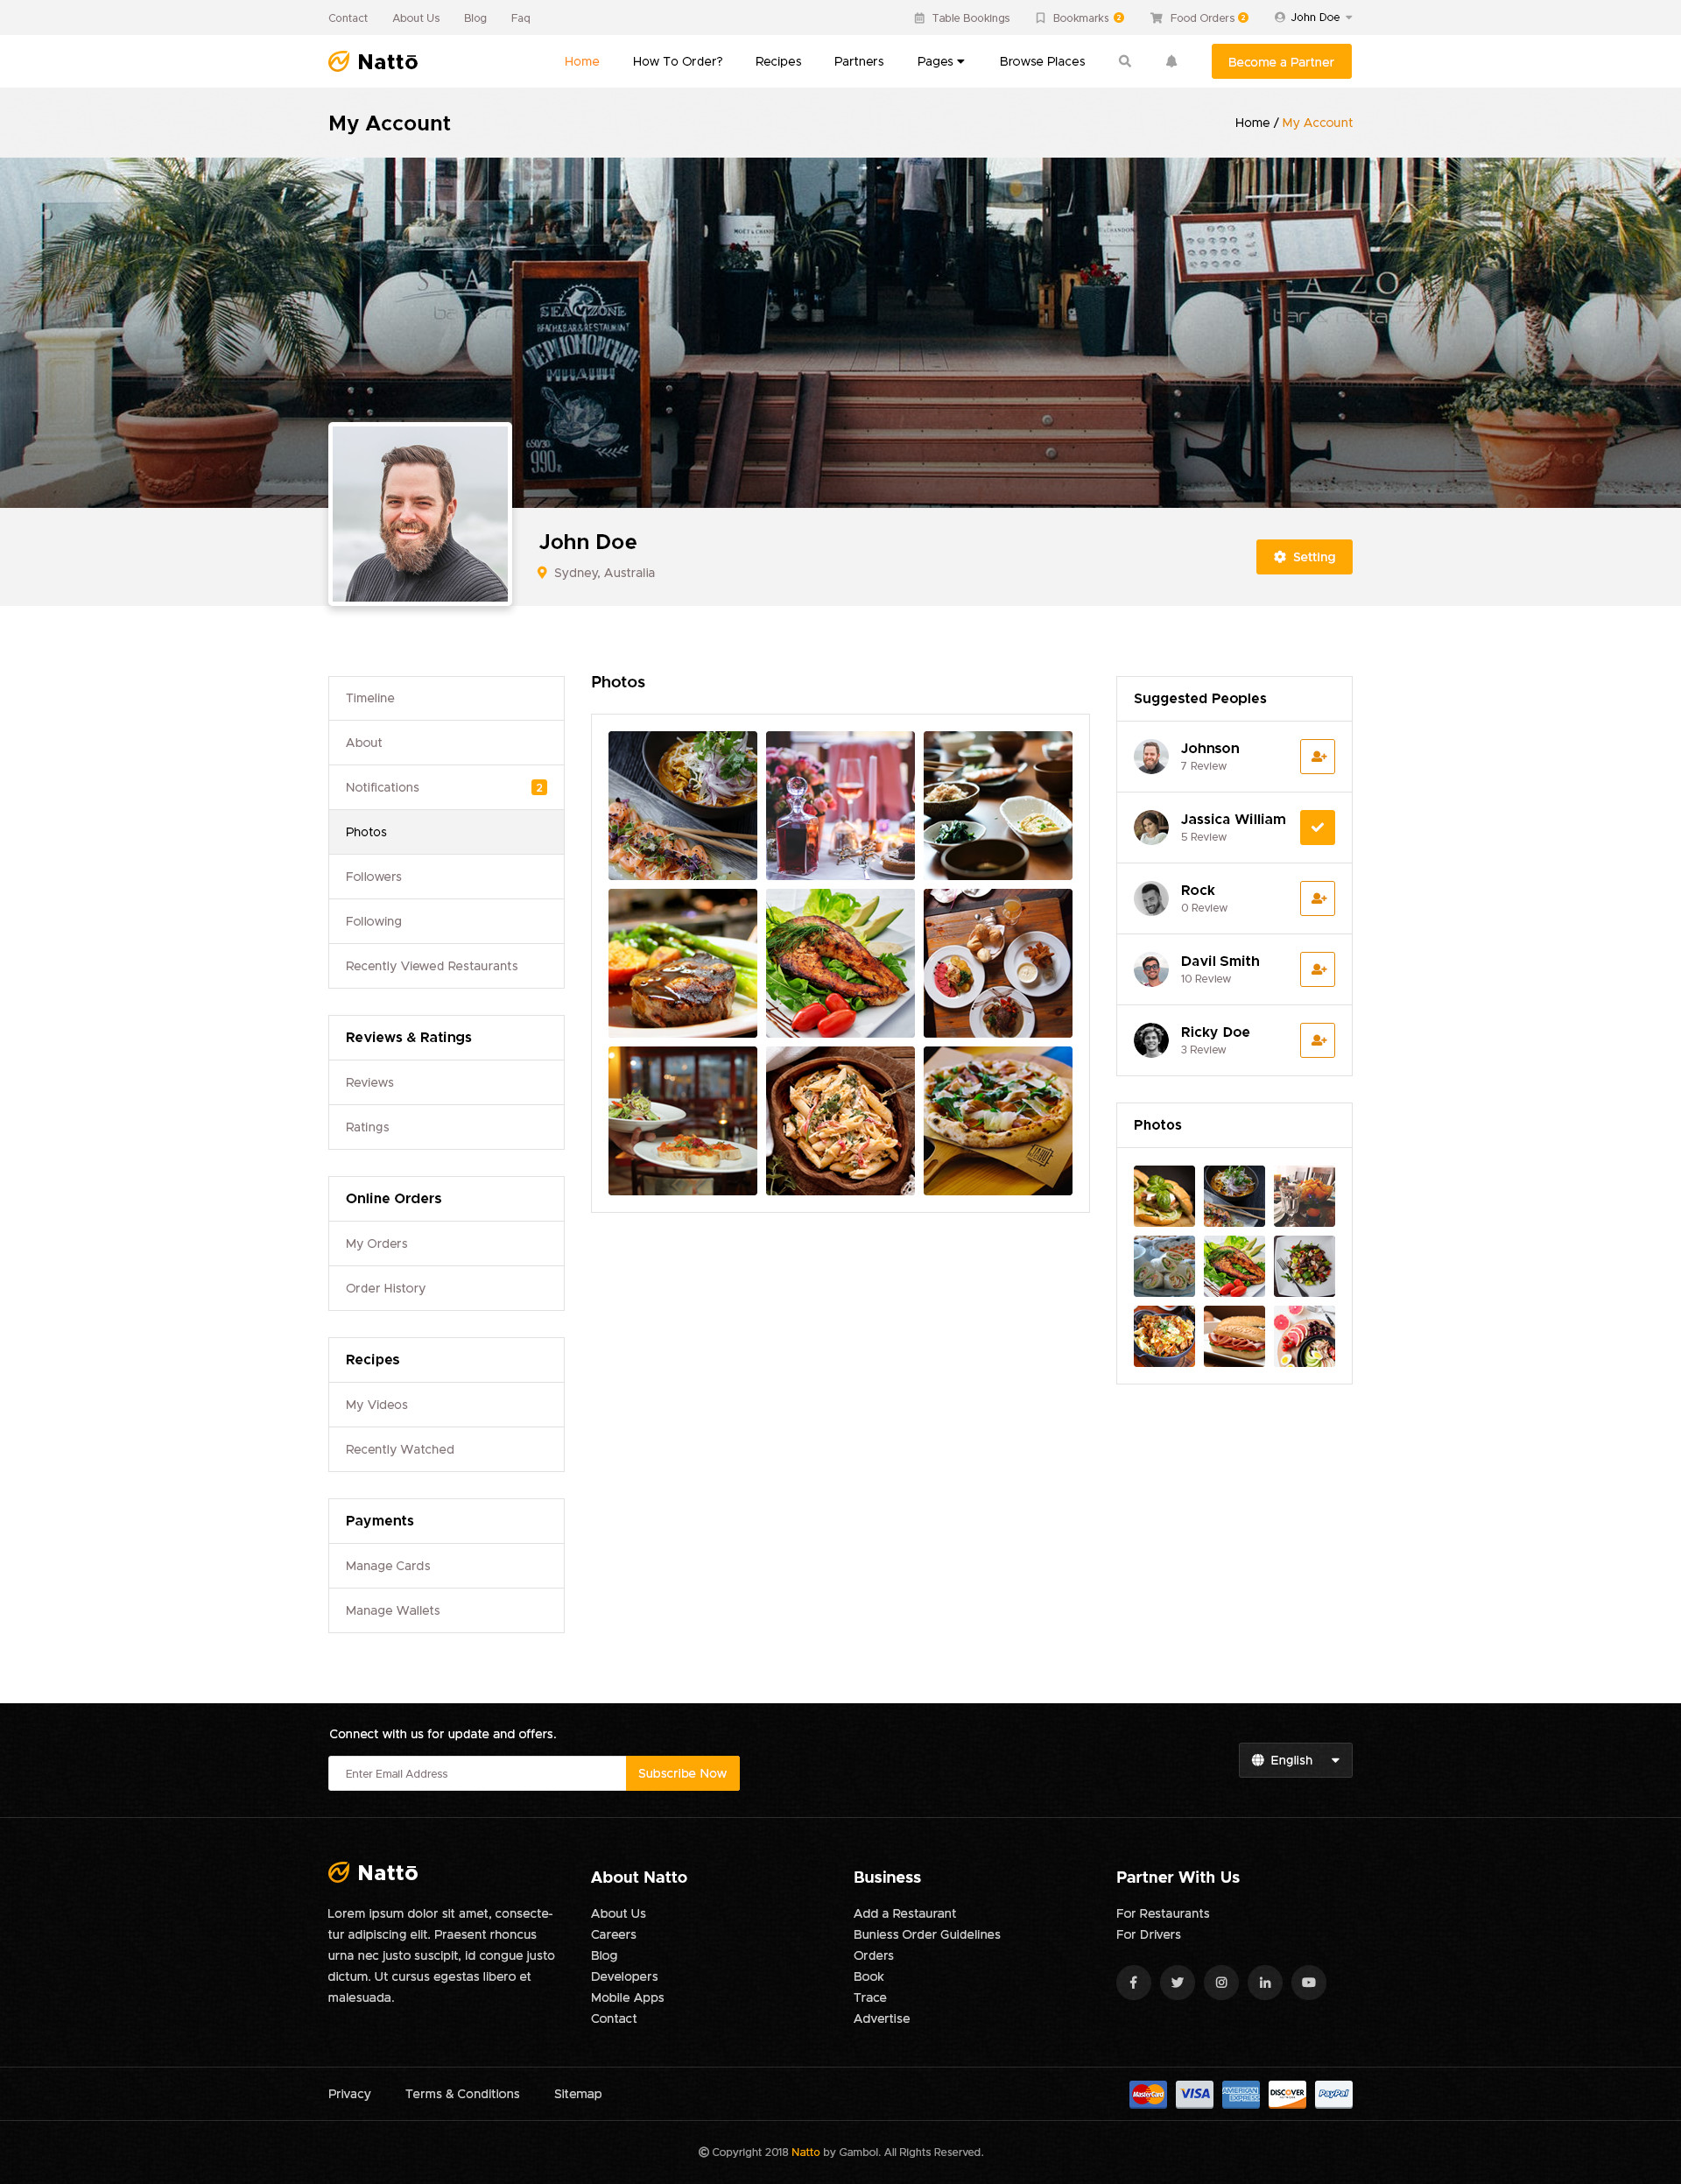 Natto Online Food Ordering Social Networking Psd Template By Gambol